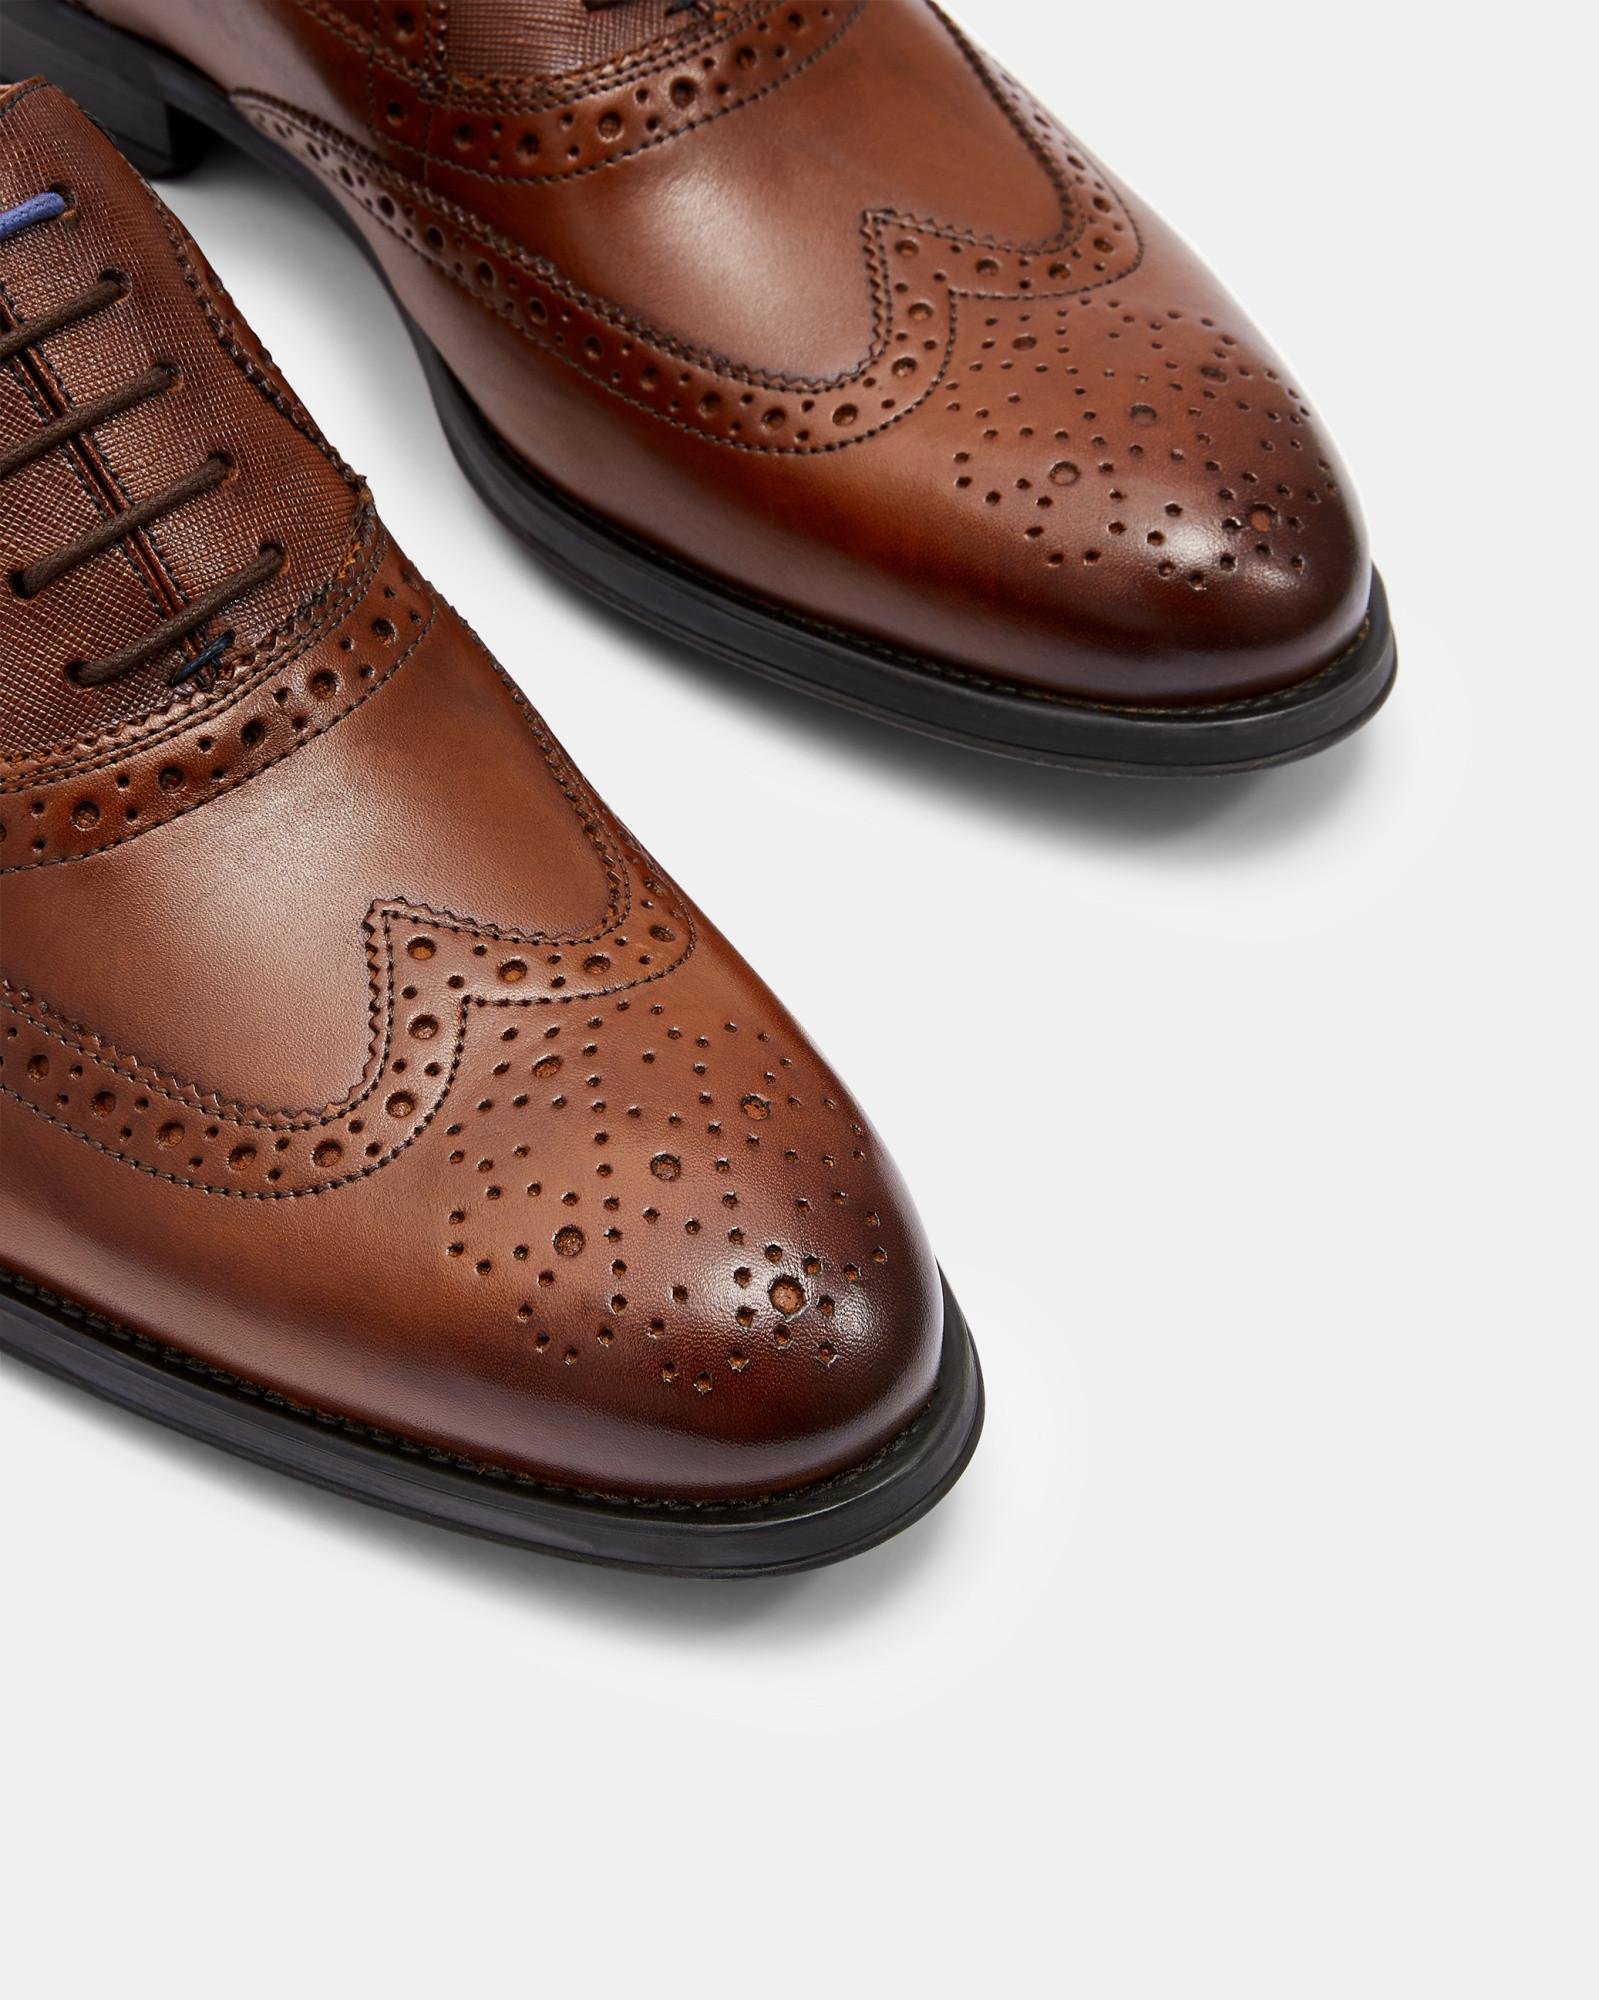 42ac18649b05ce Lyst - Ted Baker Leather Wing Cap Brogues in Brown for Men